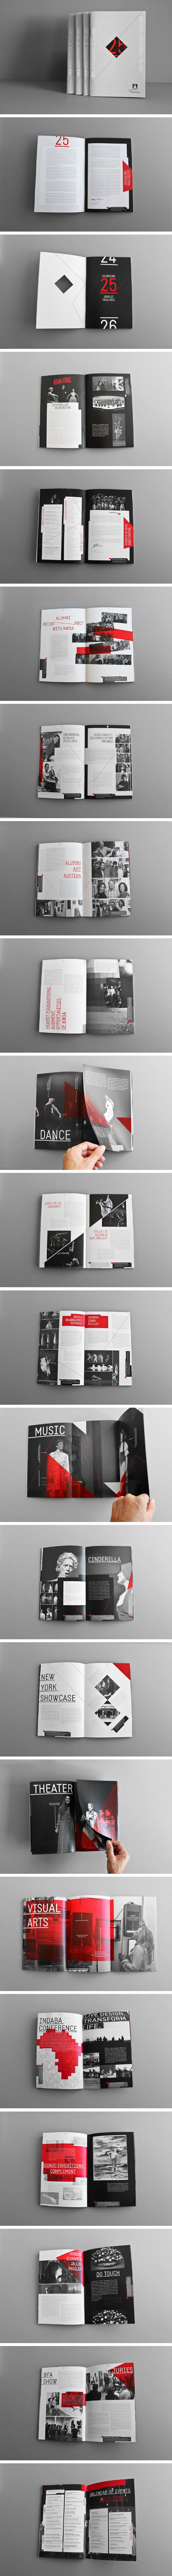 NEW WORLD SCHOOL OF THE ARTS MAGAZINE